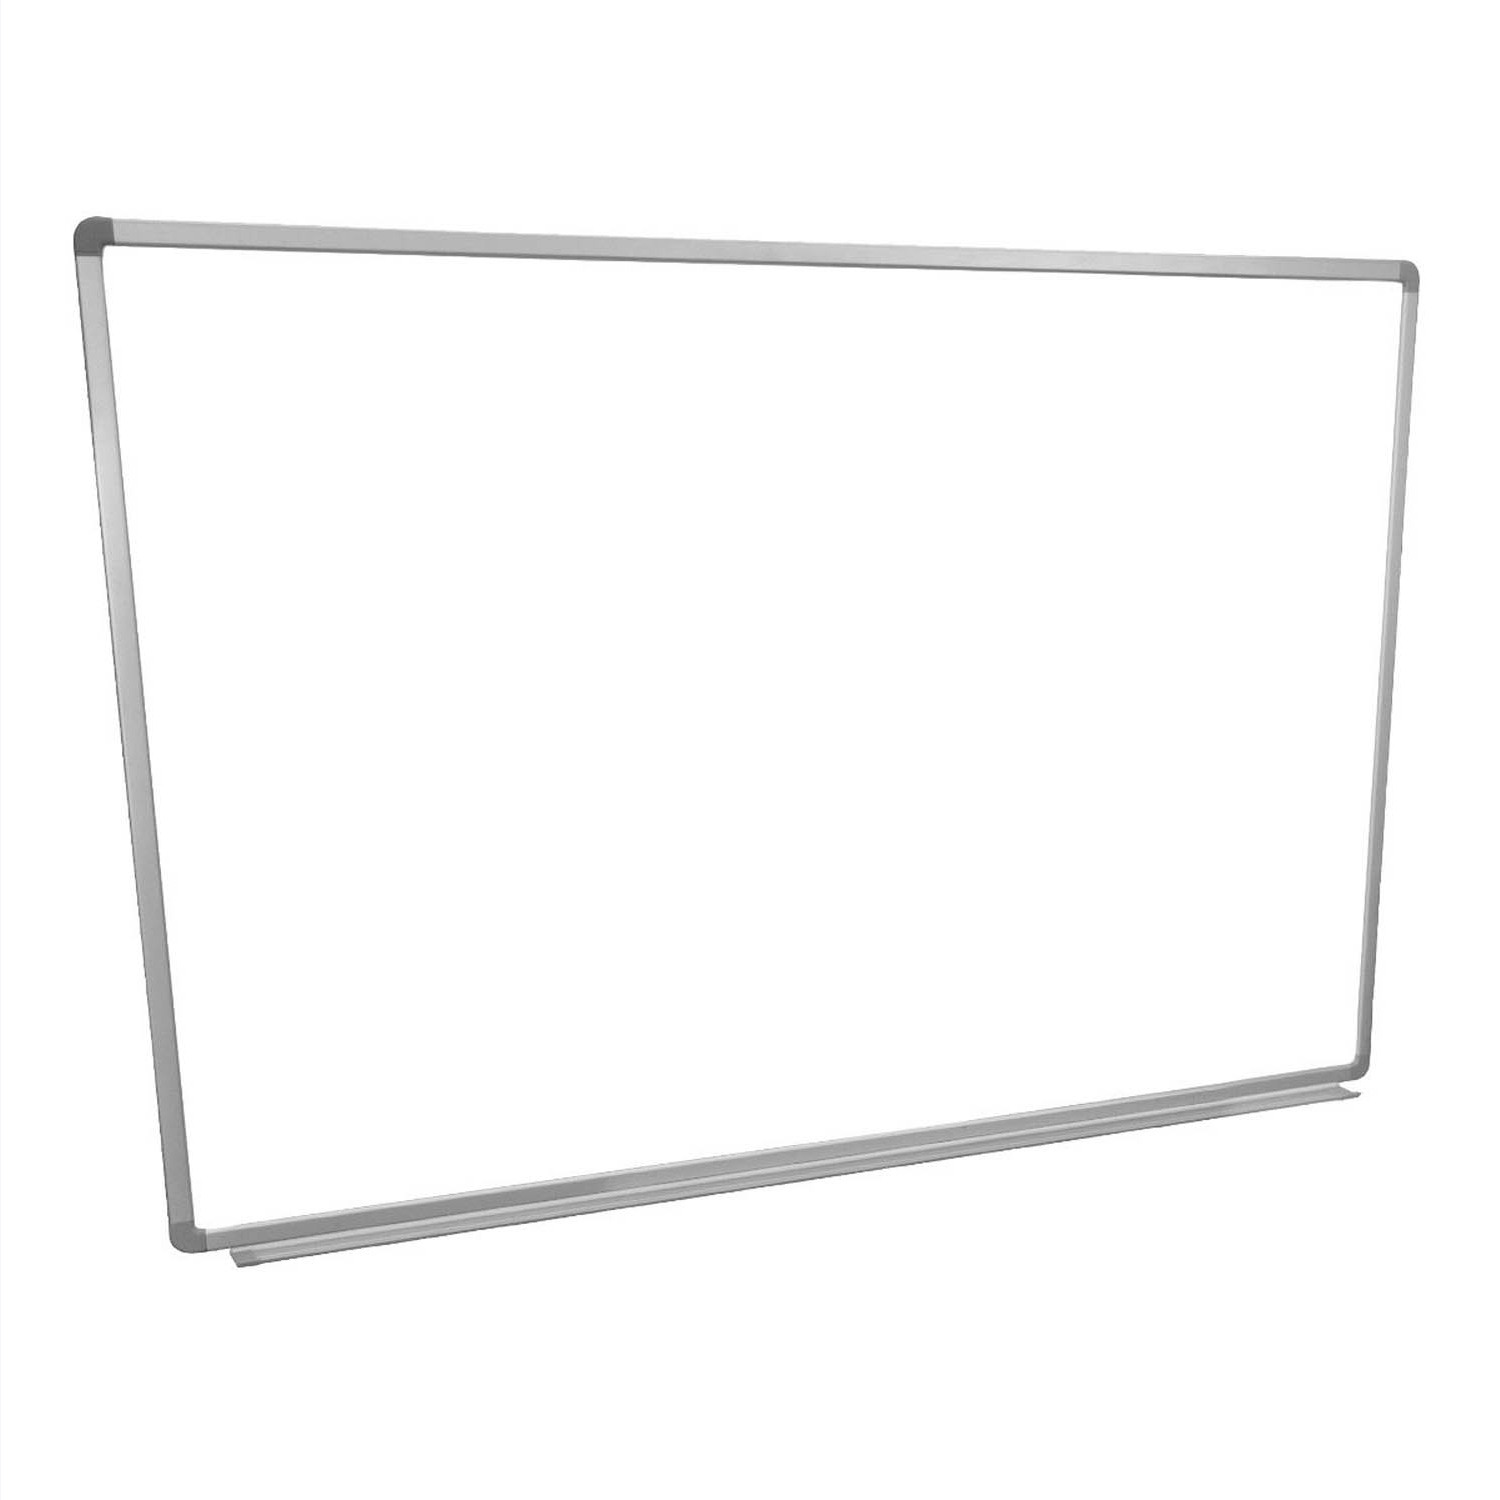 Offex Universal Dry Erase Classroom Wallmount Magnetic Whiteboard With Aluminium Frame And Tray, 48